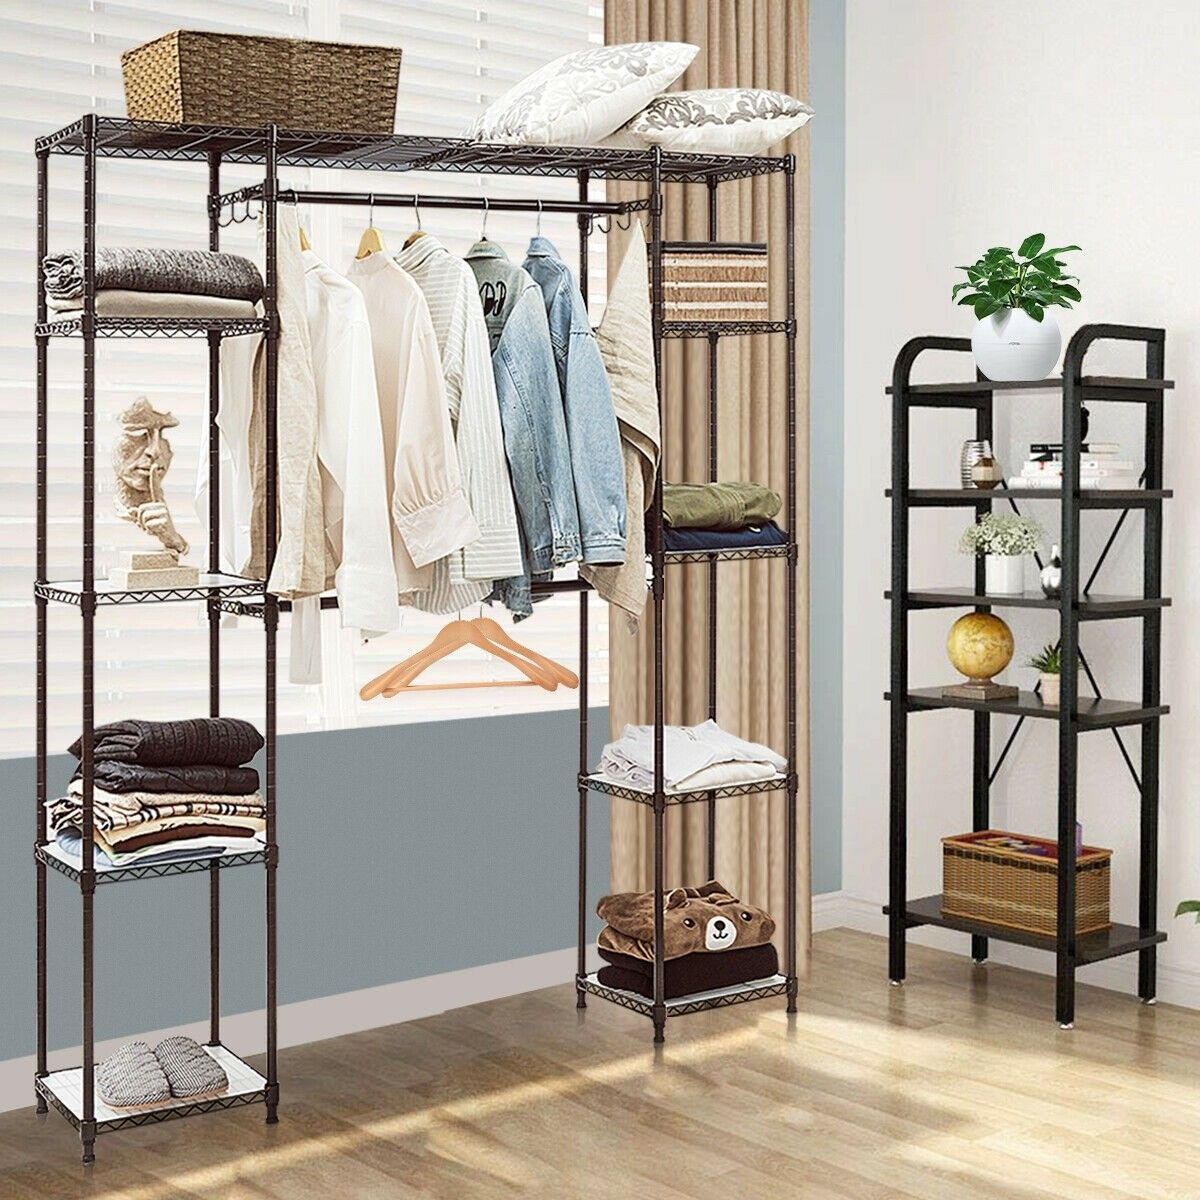 Solution For Bedroom Without A Closet Brackets Board And Cafe